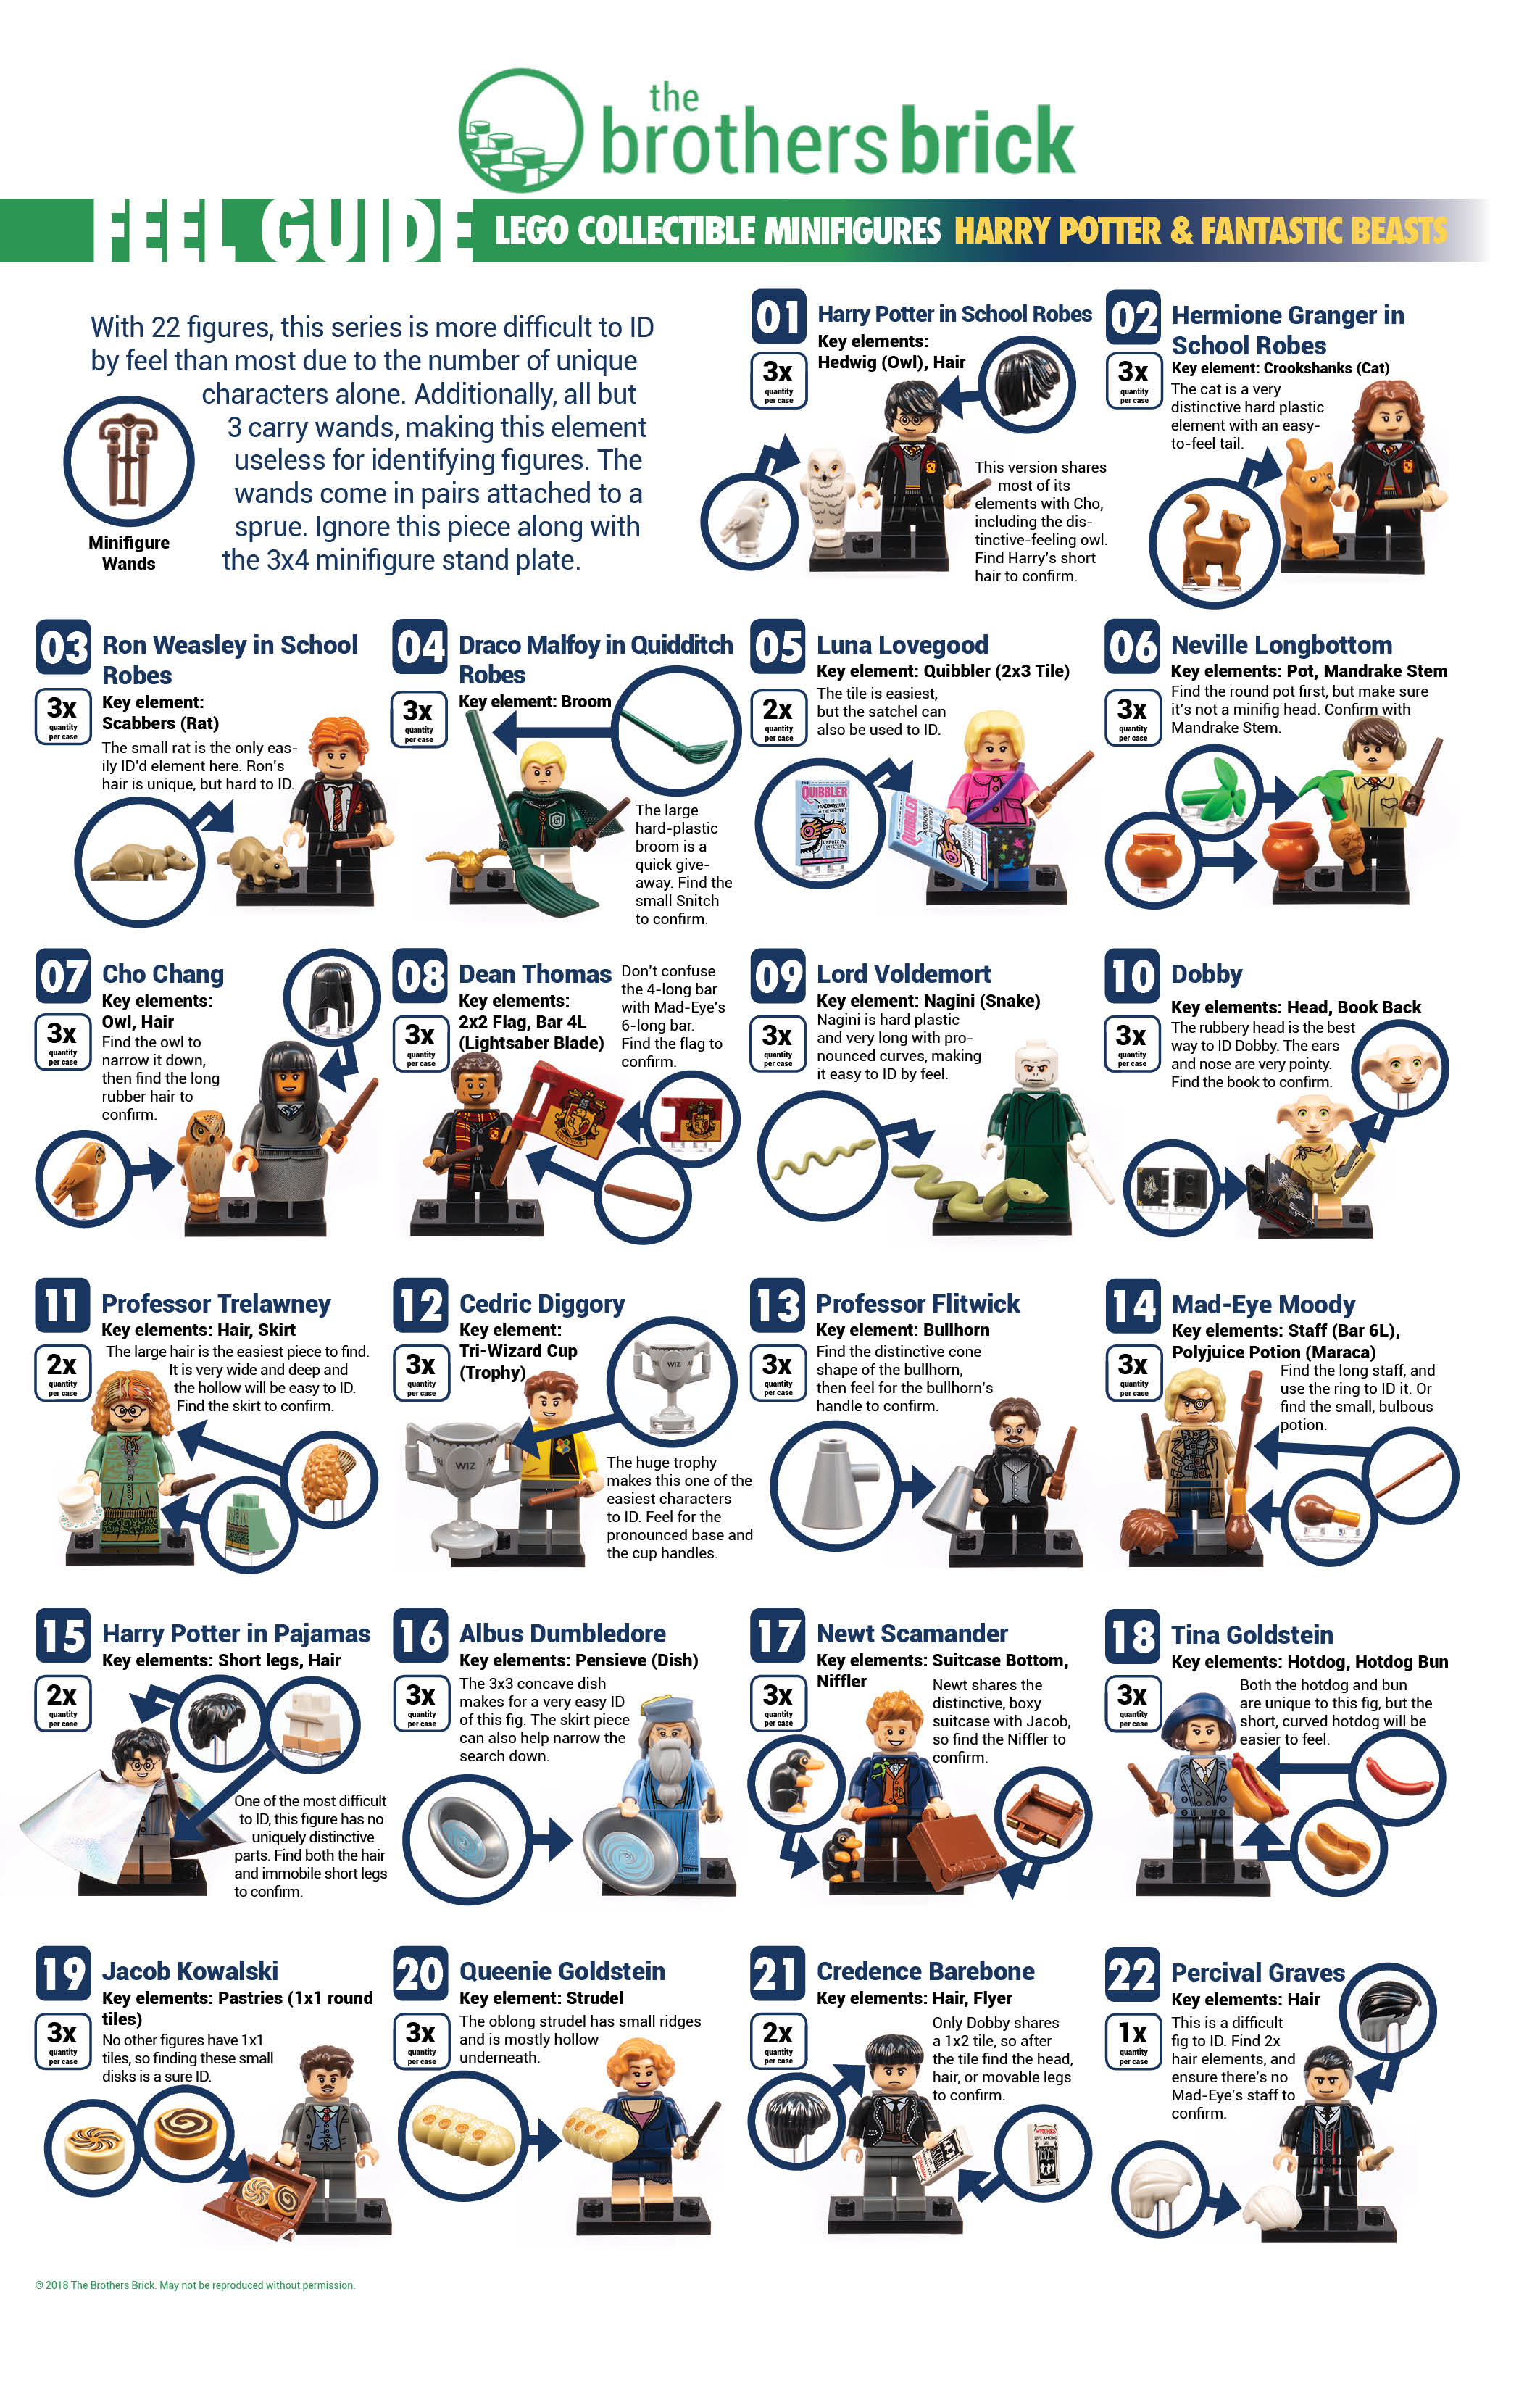 Ultimate guide for lego series 15 minifigures | find the pdf… | flickr.